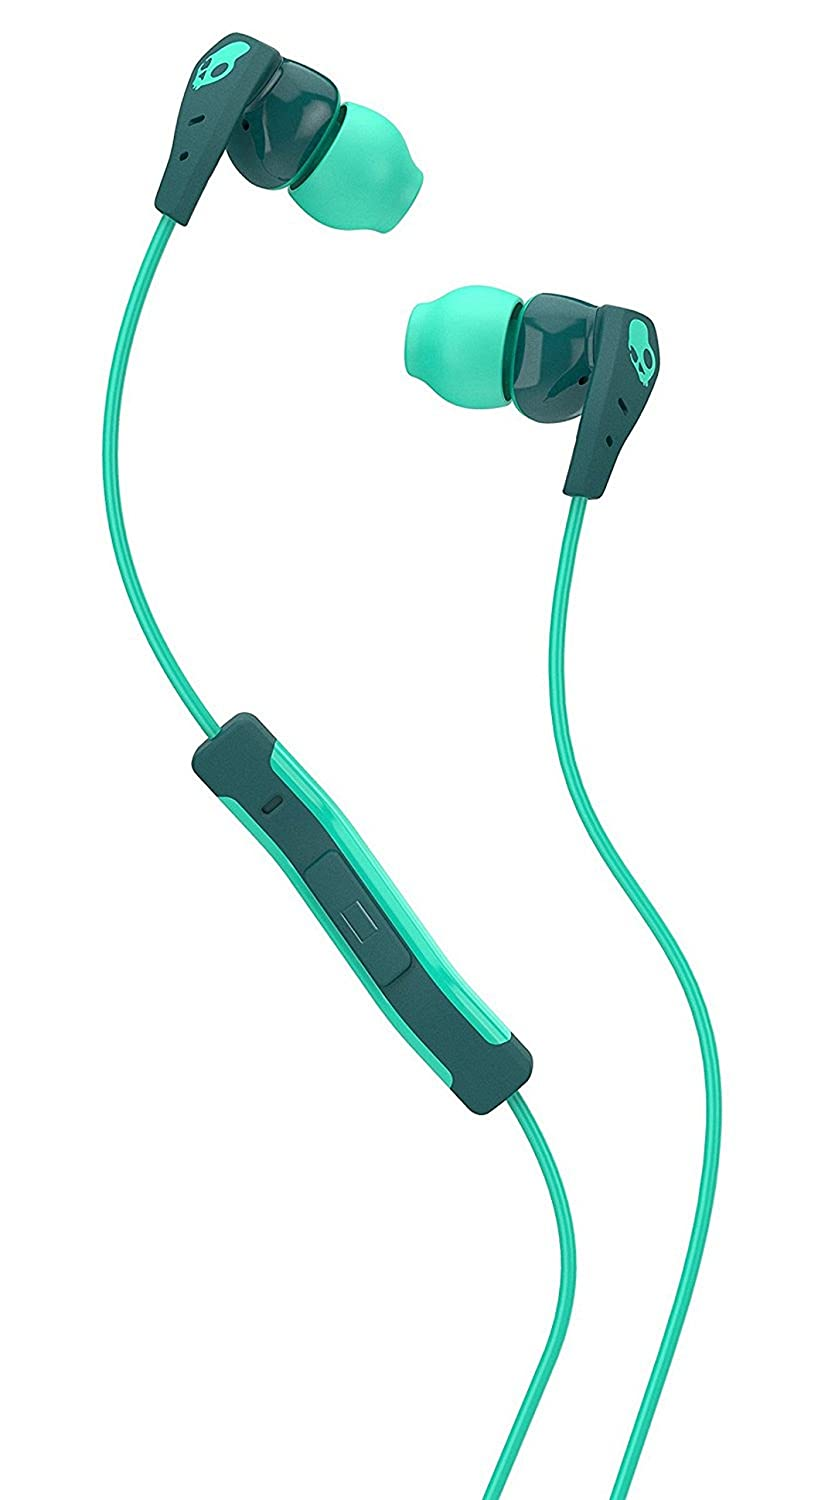 Skullcandy Method In-Ear Sweat Resistant Sports Earbud, Teal/Green